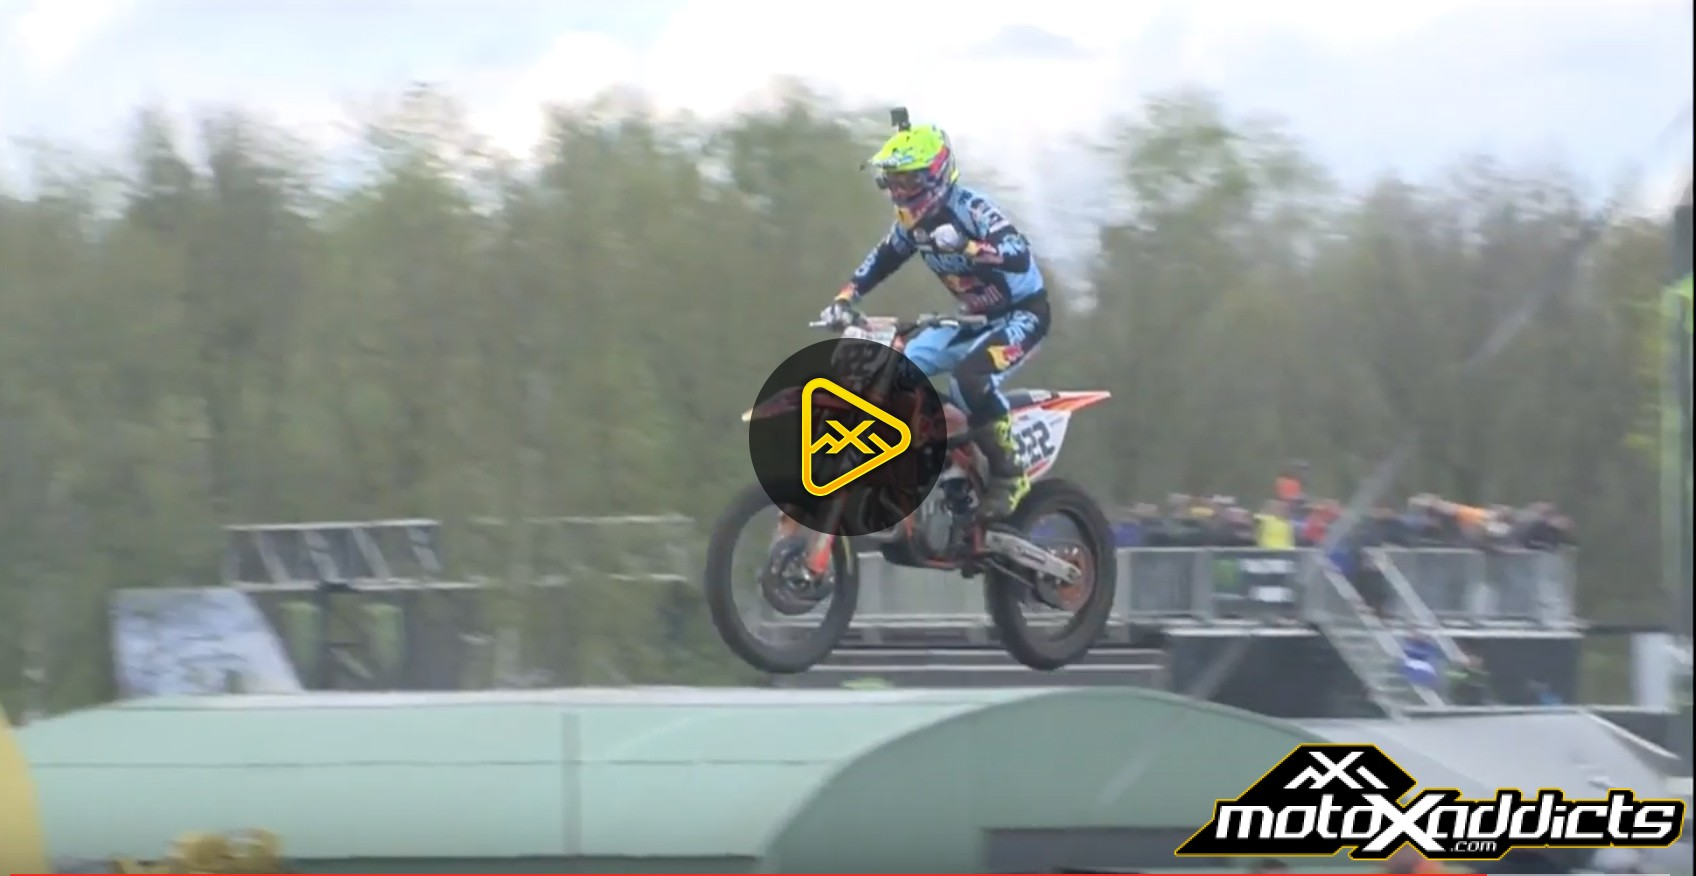 Best Moments – MXGP Highlights from Valkenswaard